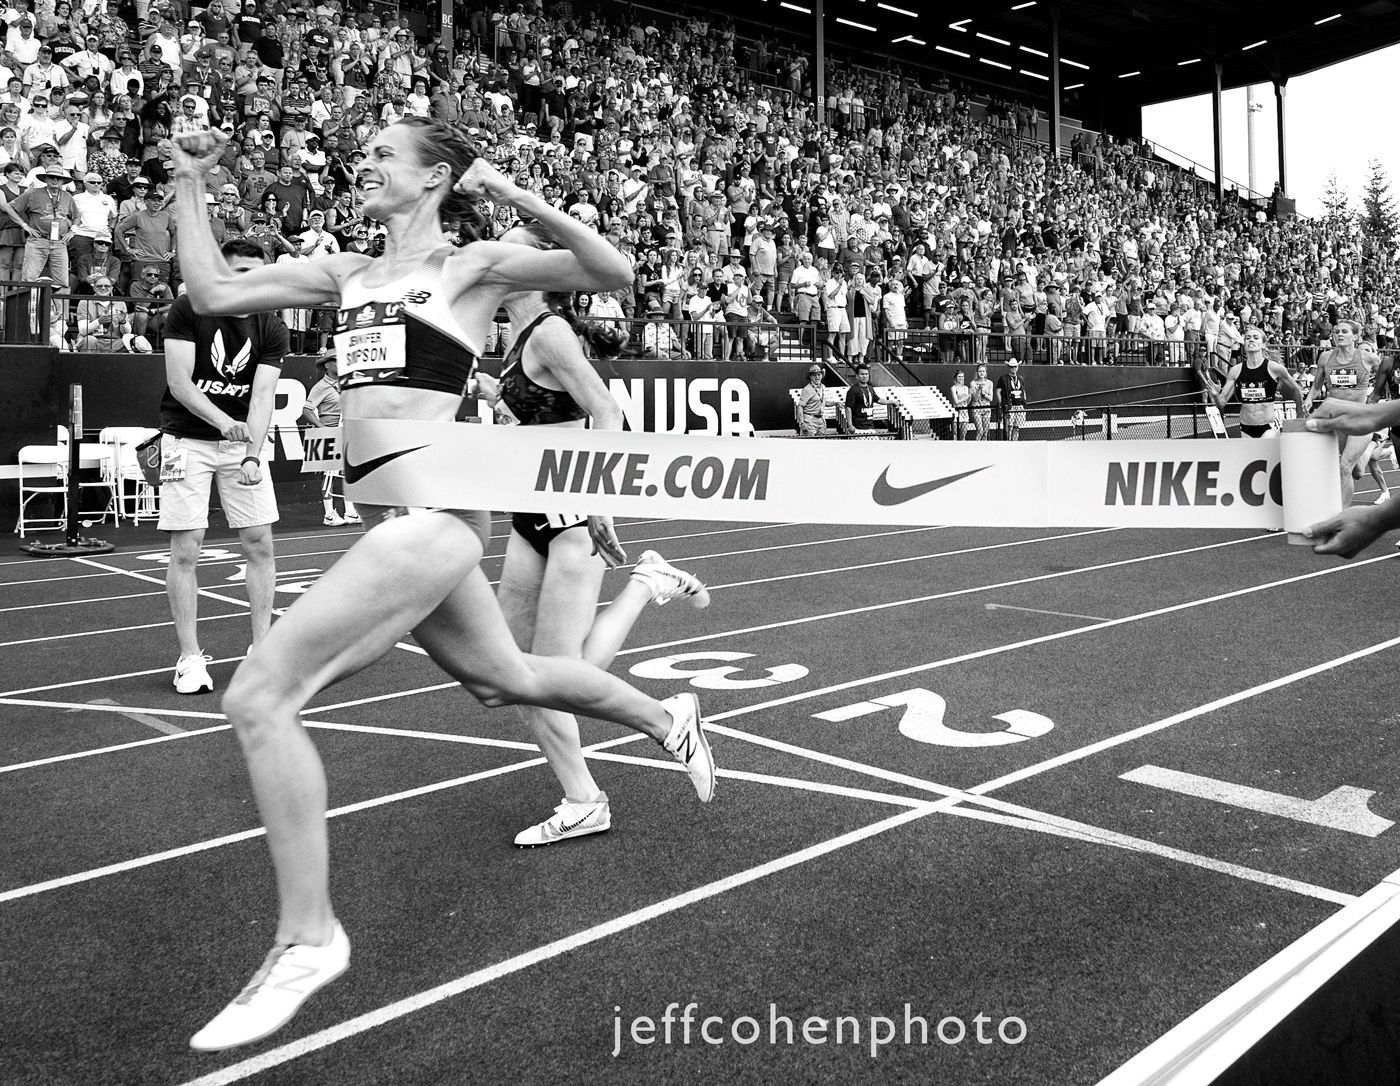 188_1r2015_usaoutdoors_day_4_jenny_simpson_1500m_jeff_cohen_0772__web.jpg